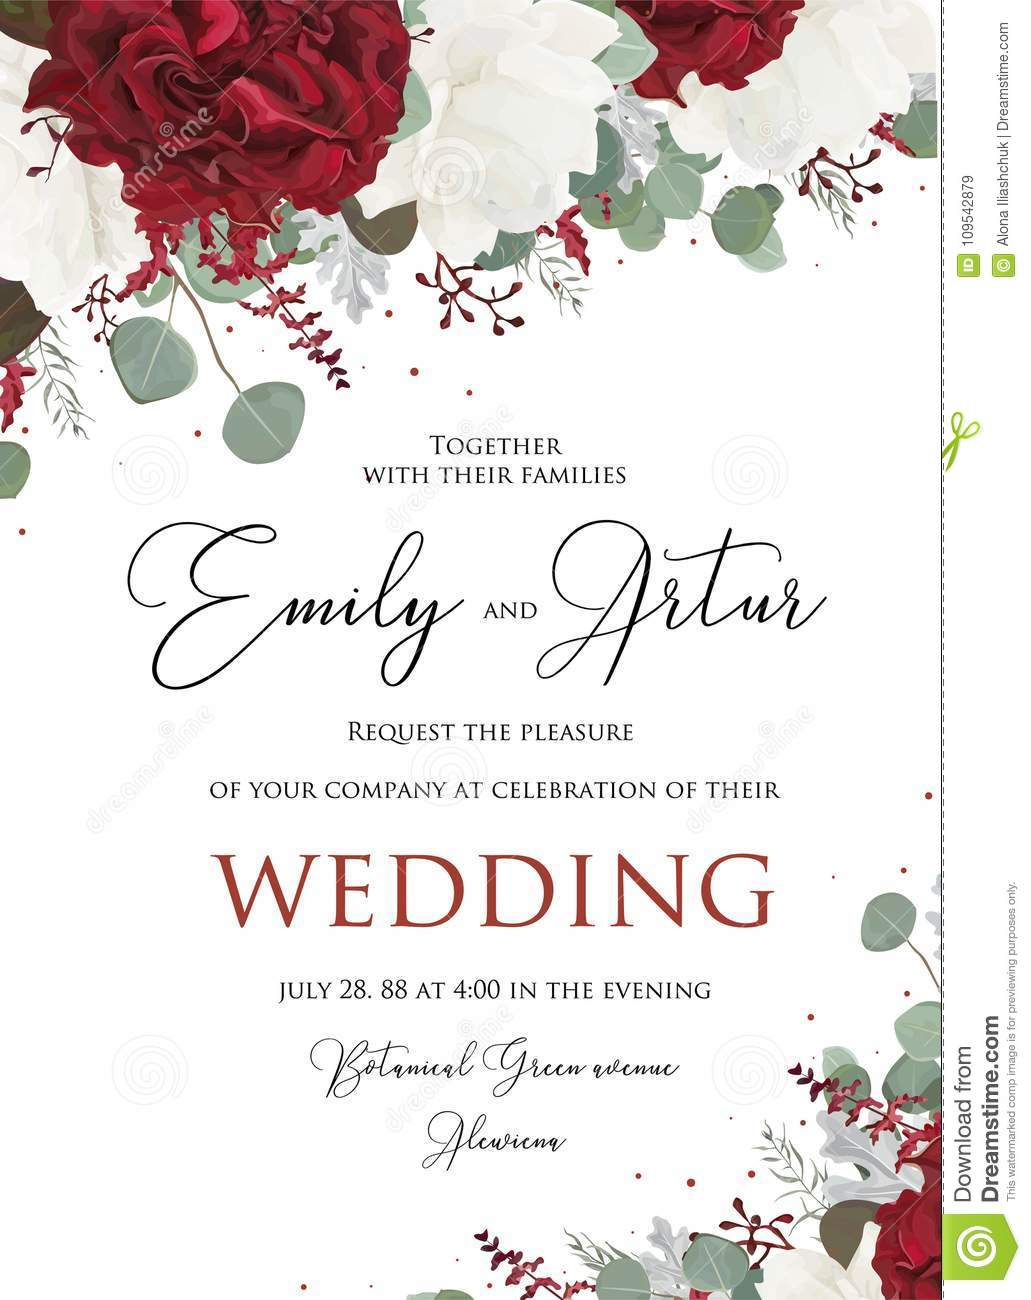 Wedding floral invite, invitation save the date card design with